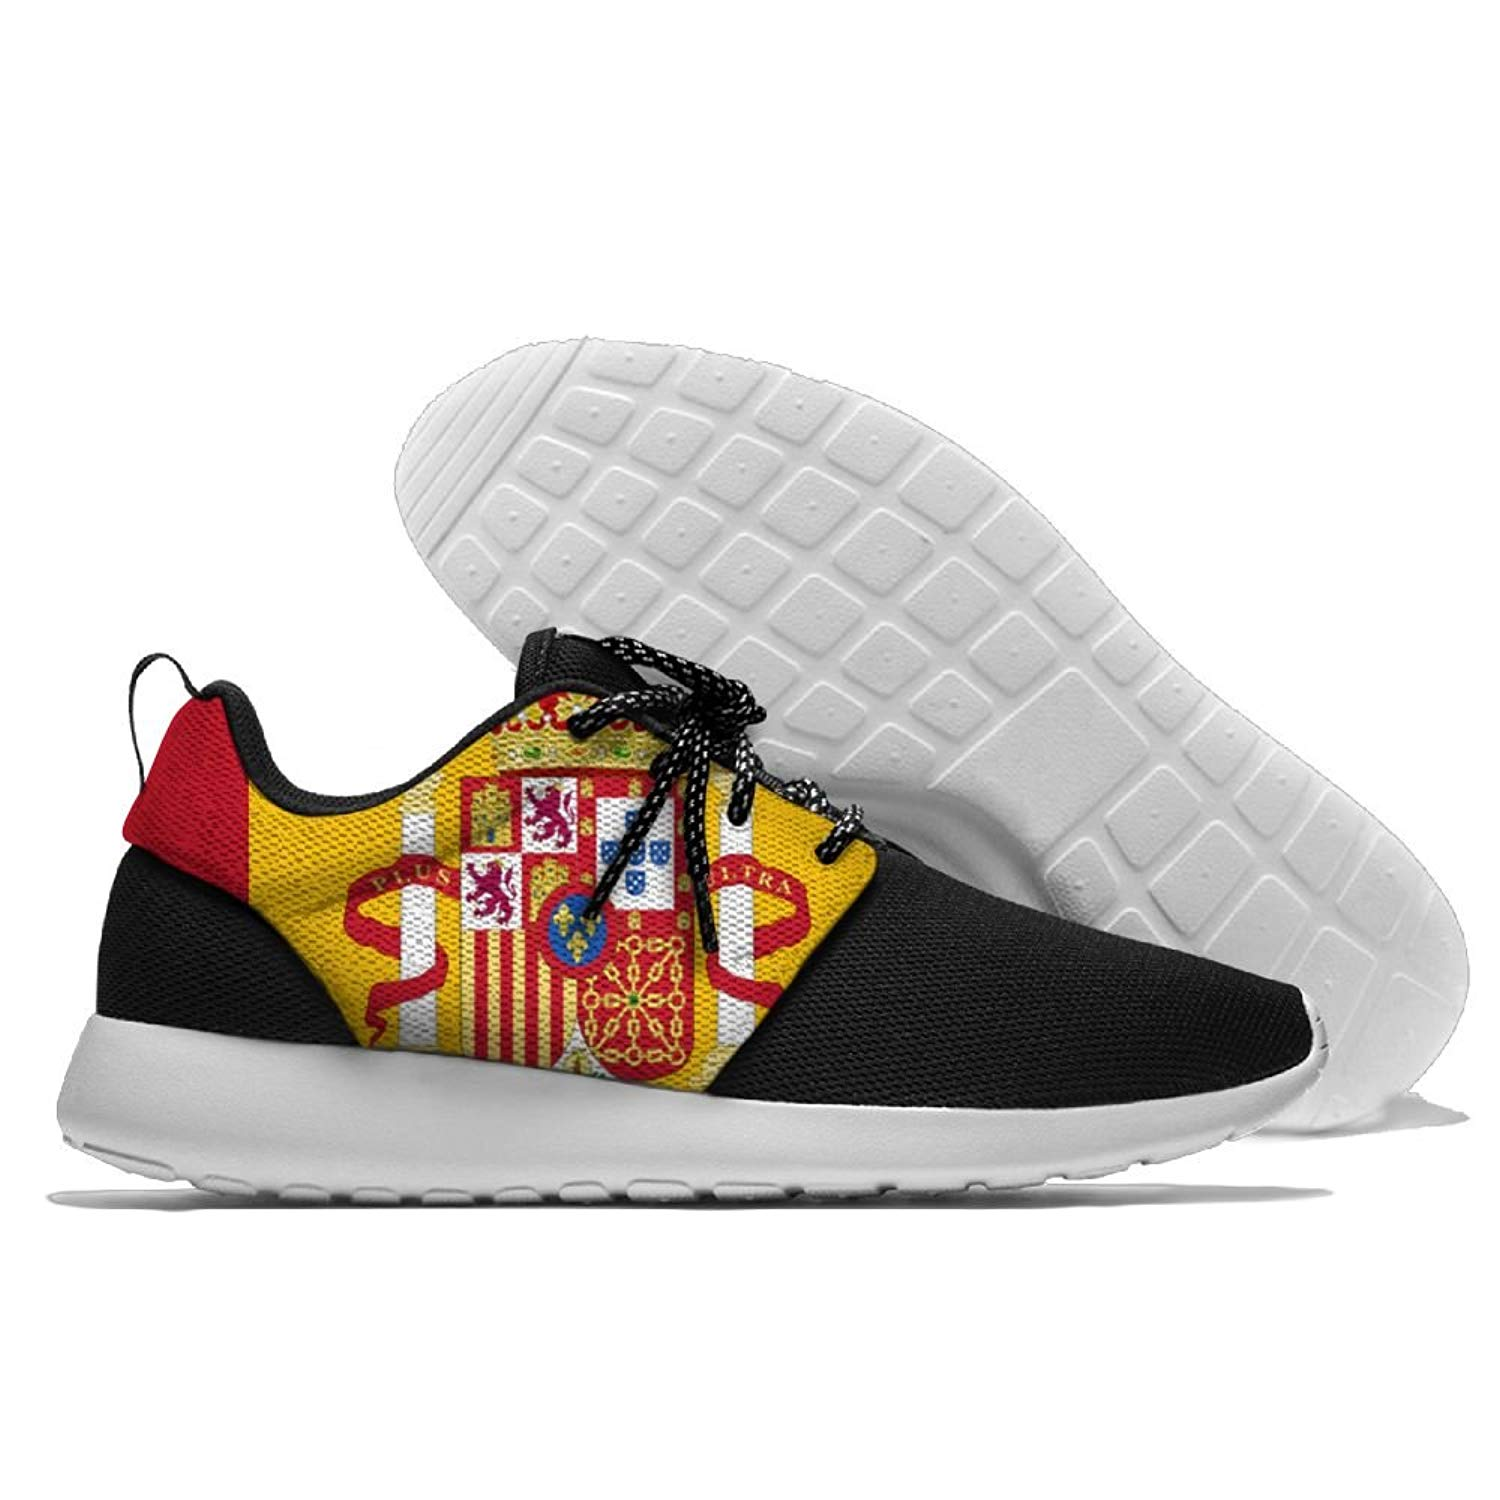 Spanish Flag Unisex Running Shoes Sport Shoes Lightweight Sneakers Men s  Mesh Breathable Athletic Walking Shoes 800f9a483